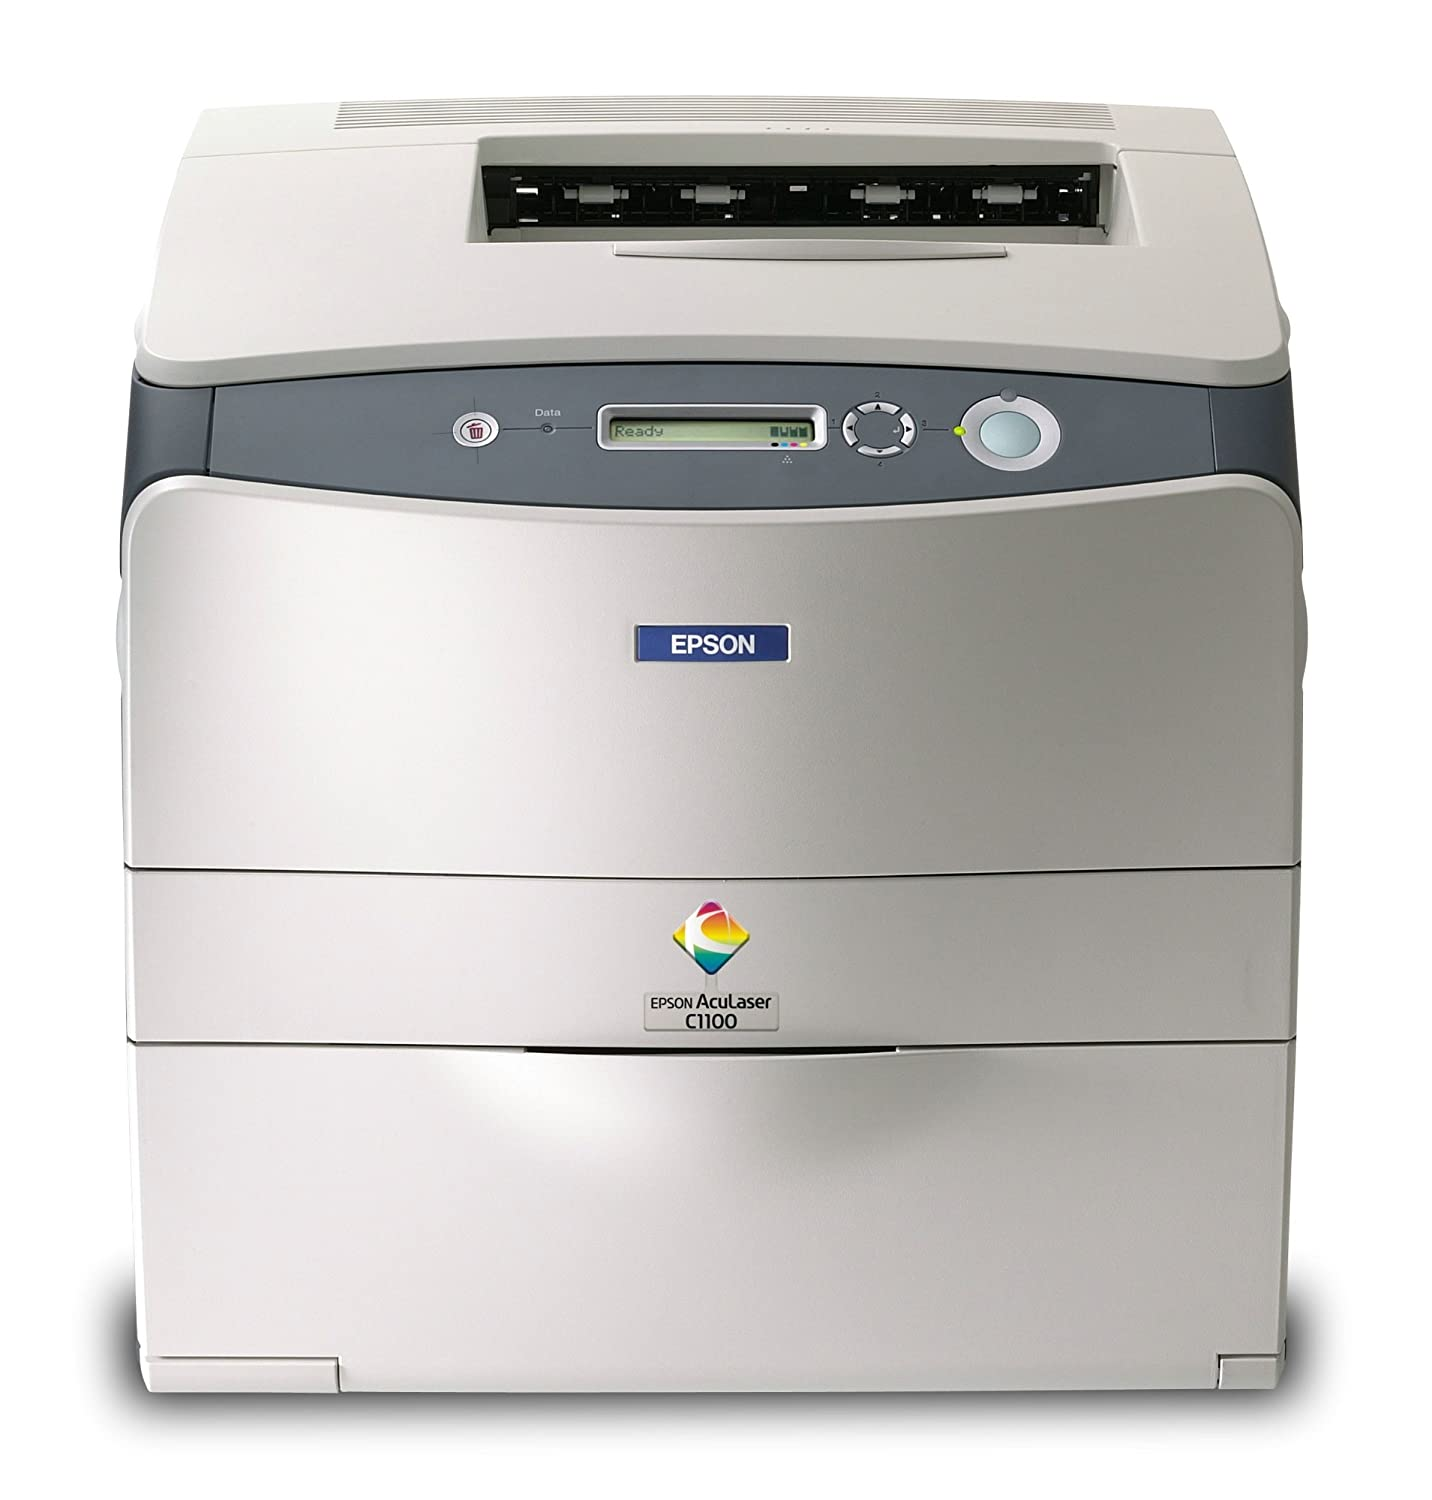 EPSON ACULASER C1100 PRINTER DRIVERS FOR MAC DOWNLOAD